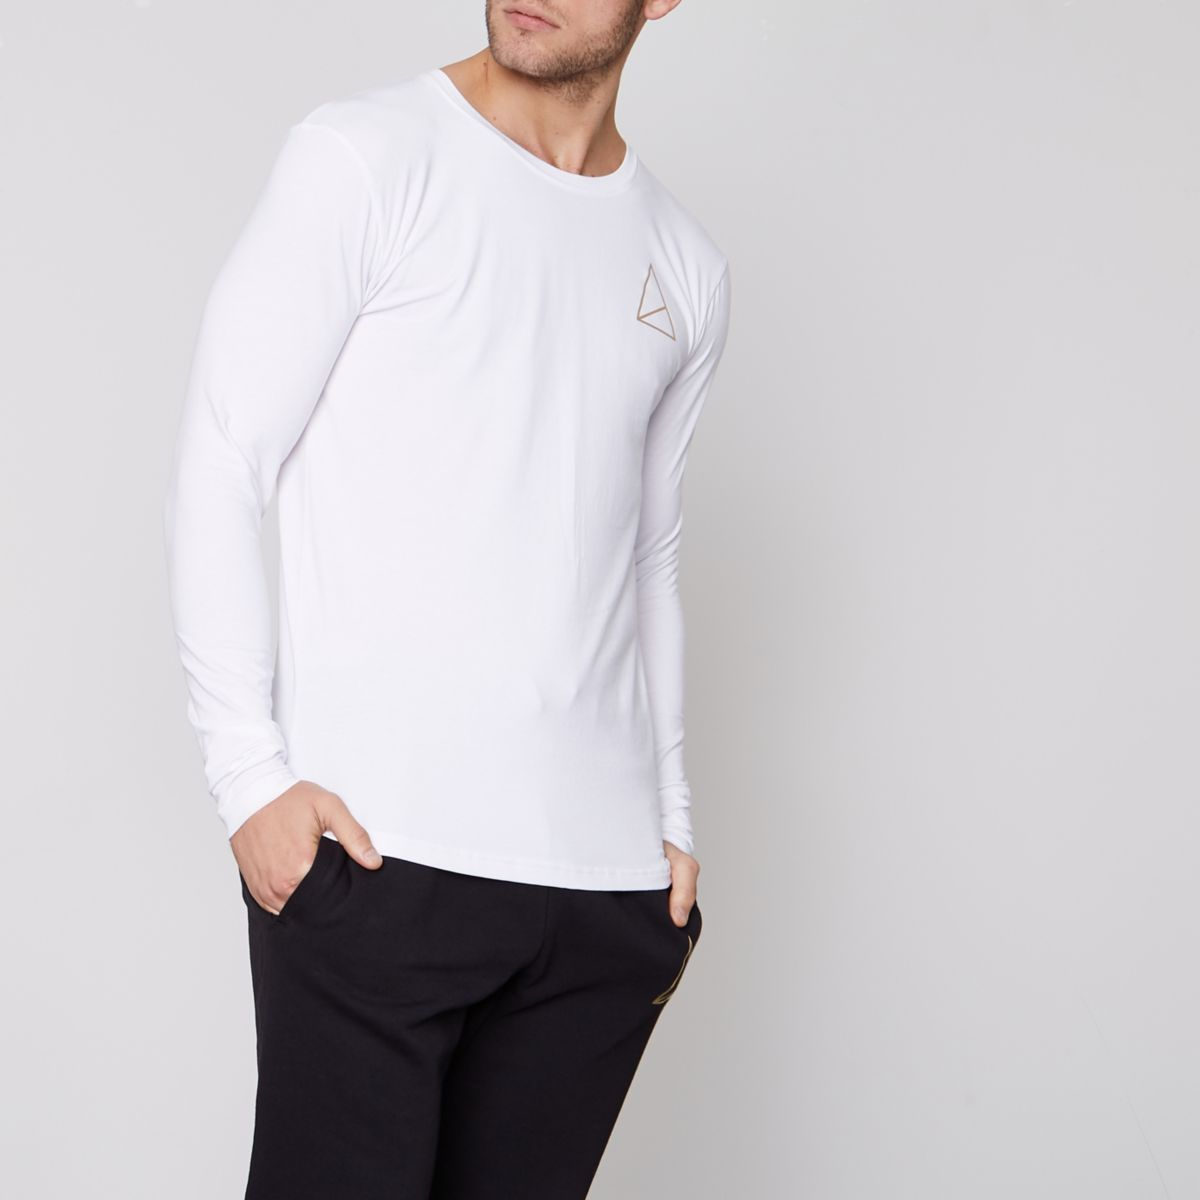 Golden Equation white long sleeve T-shirt